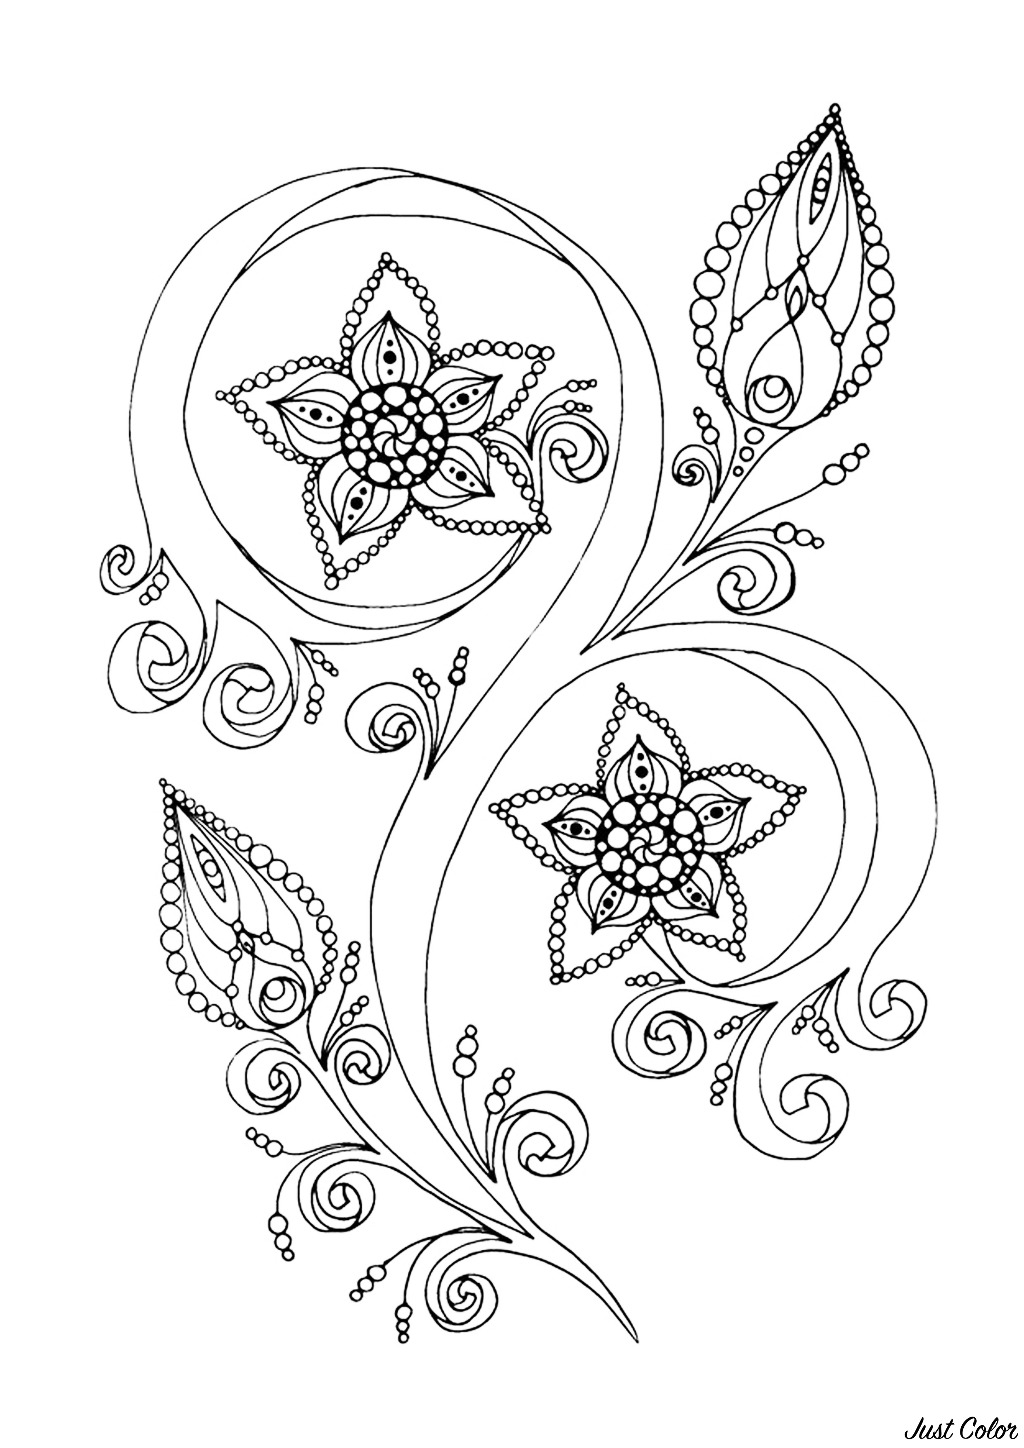 Zen & Anti-stress Coloring page : Abstract pattern inspired by flowers : n°13, by Juliasnegireva (Source : 123rf)